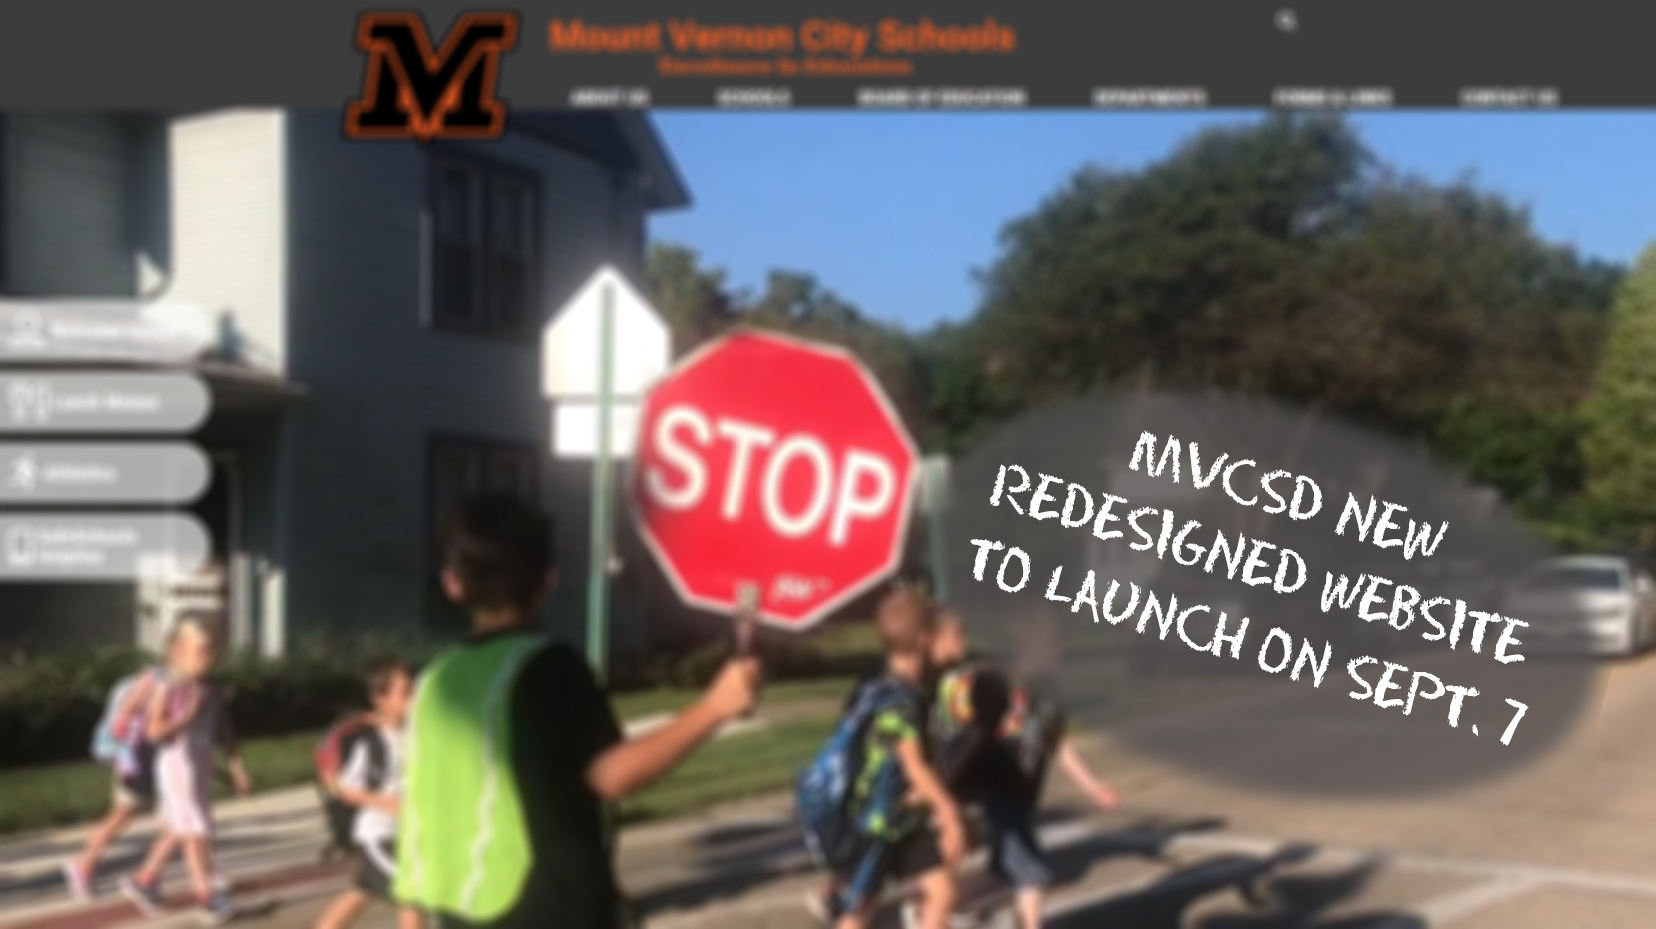 Safety patrol with stop sign and students crossing the street on MVCSDs new website.